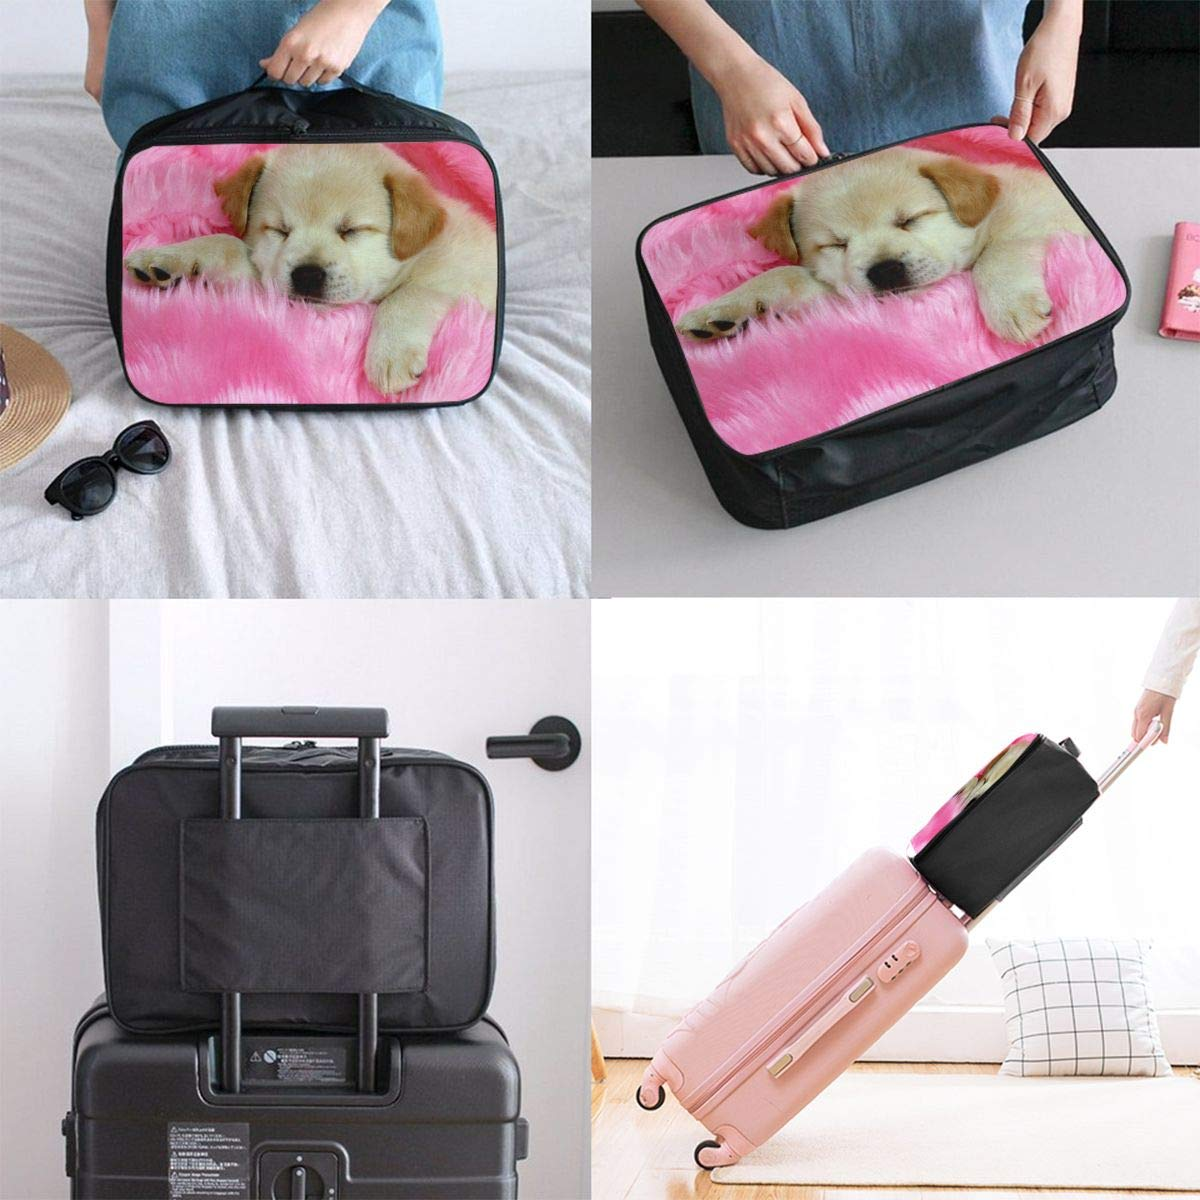 Hd8yehao Cute Dog Sitting On Fur Carpet Travel Duffel Bag Lightweight Waterproof Large Capacity Portable Luggage Bag